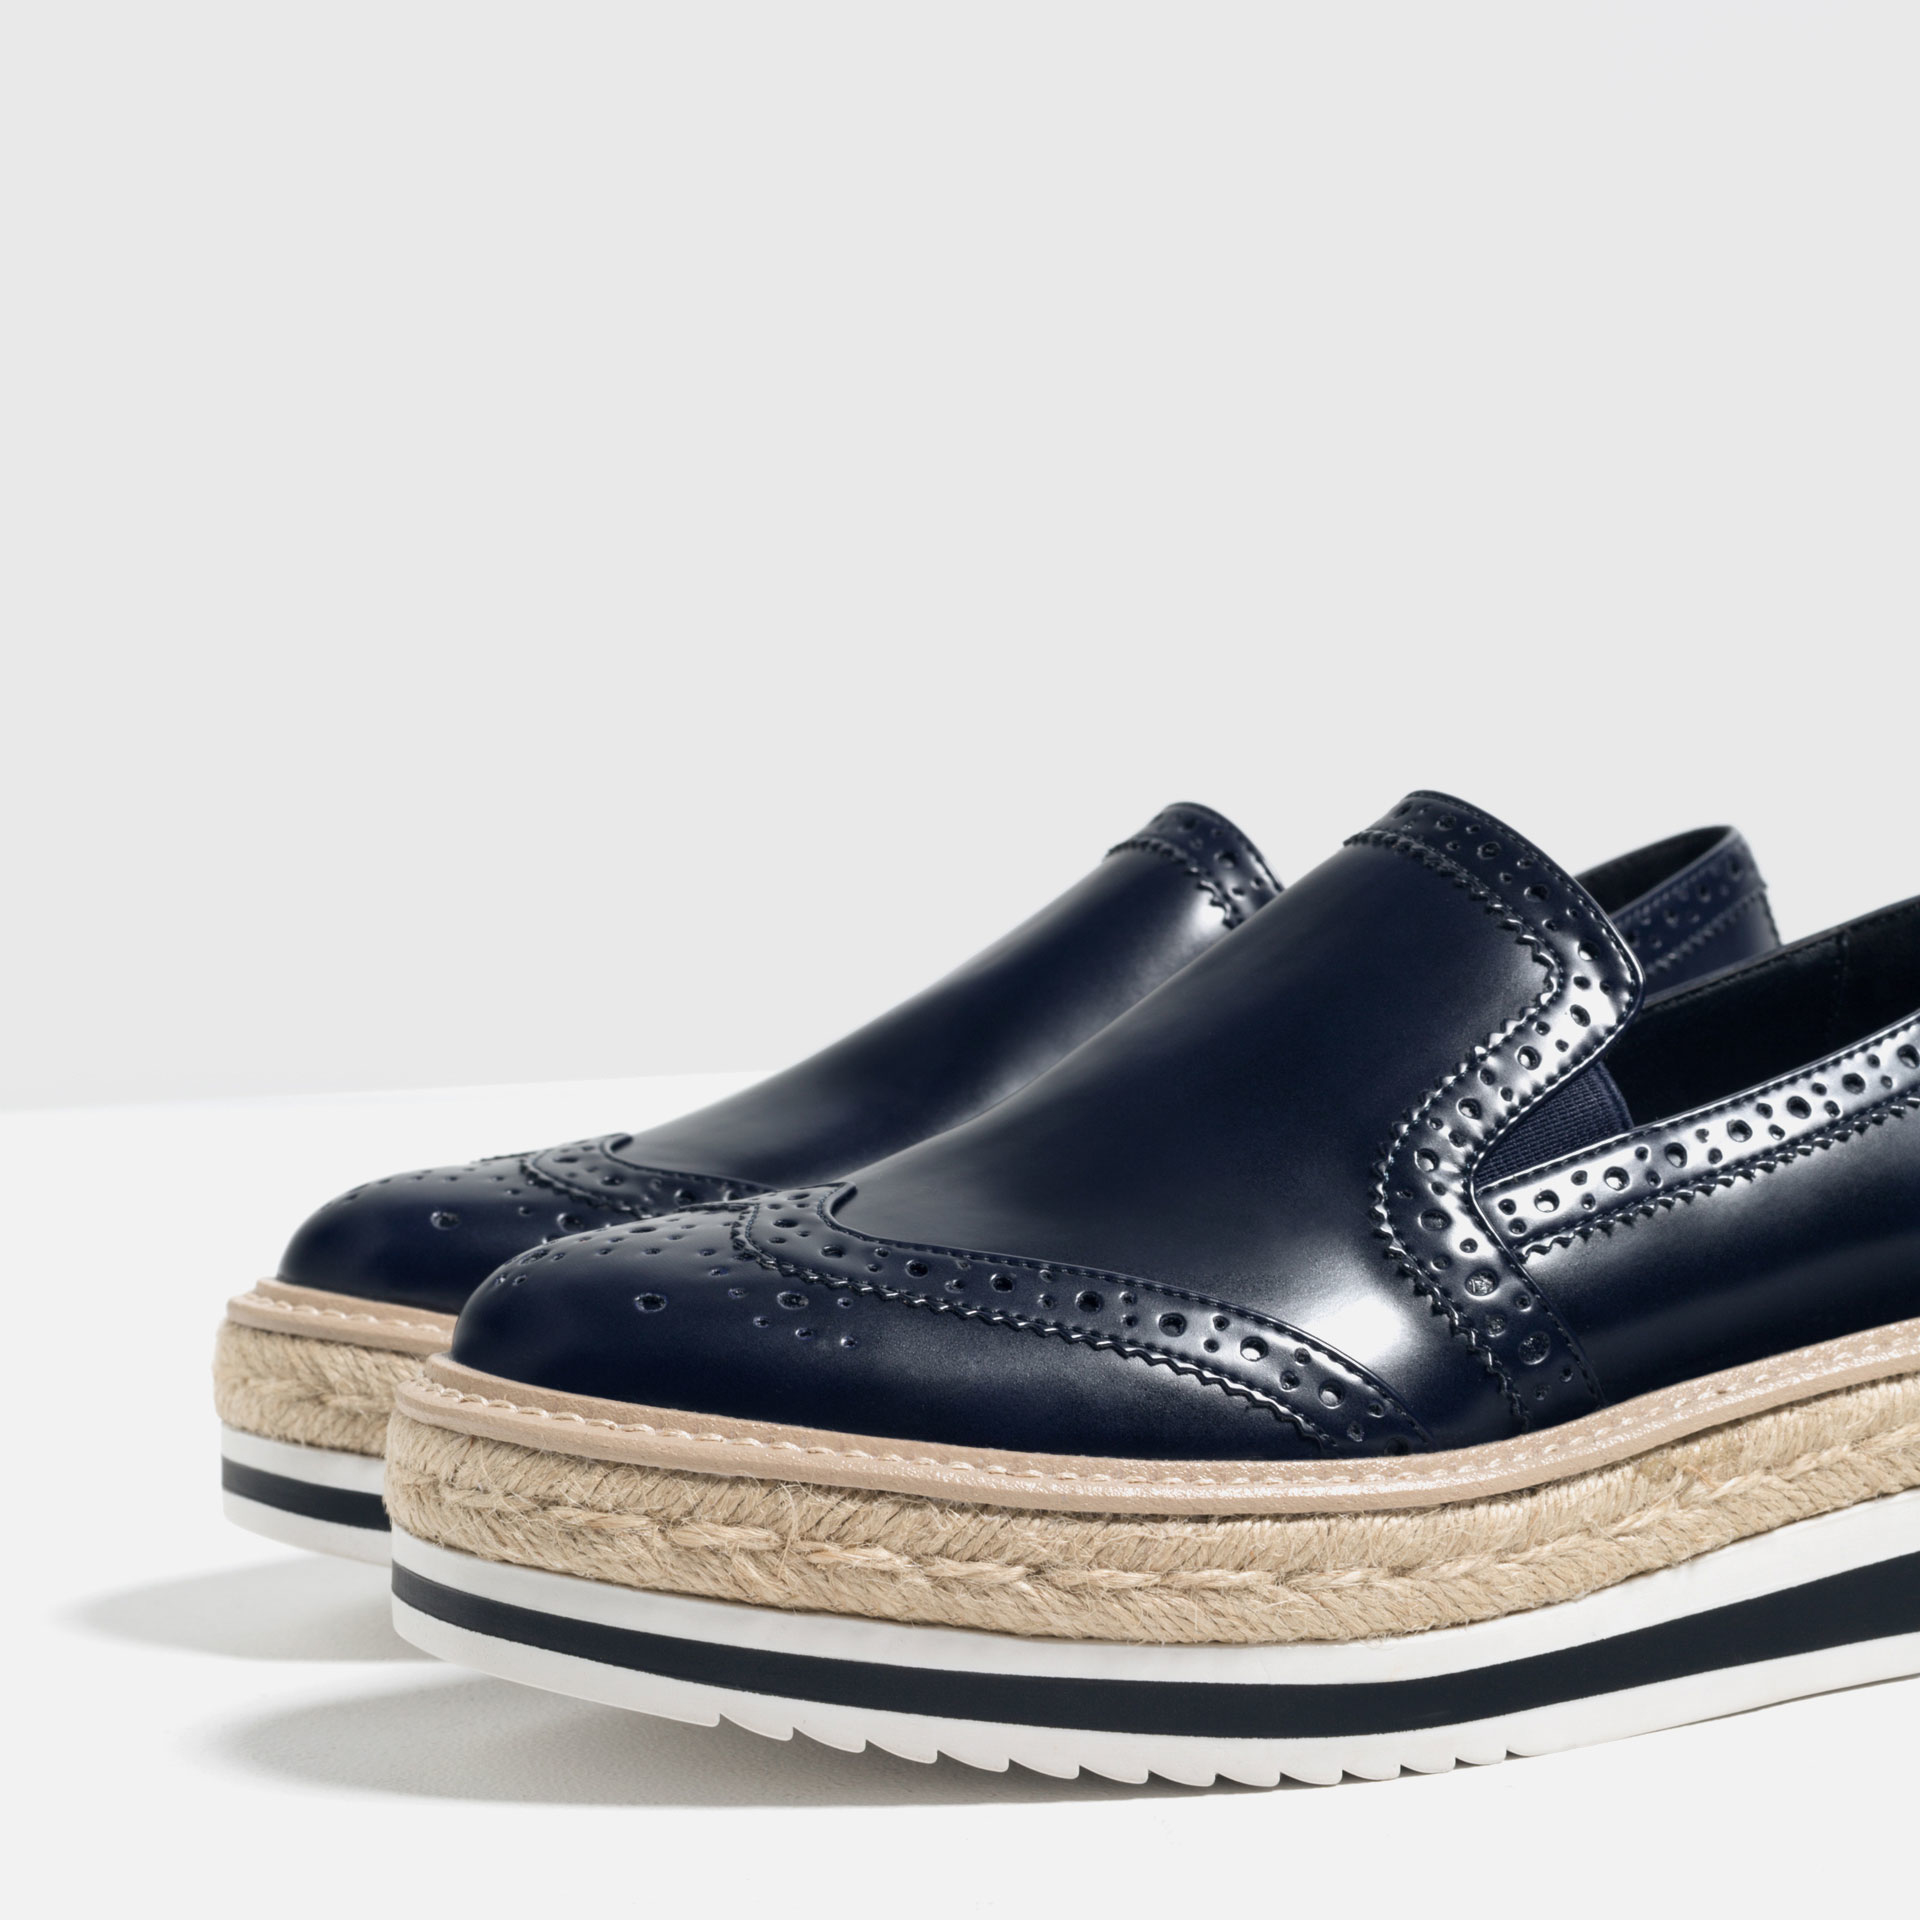 Benefits from Using Platform Shoes The biggest benefit you will receive when you're wearing platform shoes is a visual effect. You will appear to be taller, which makes your .